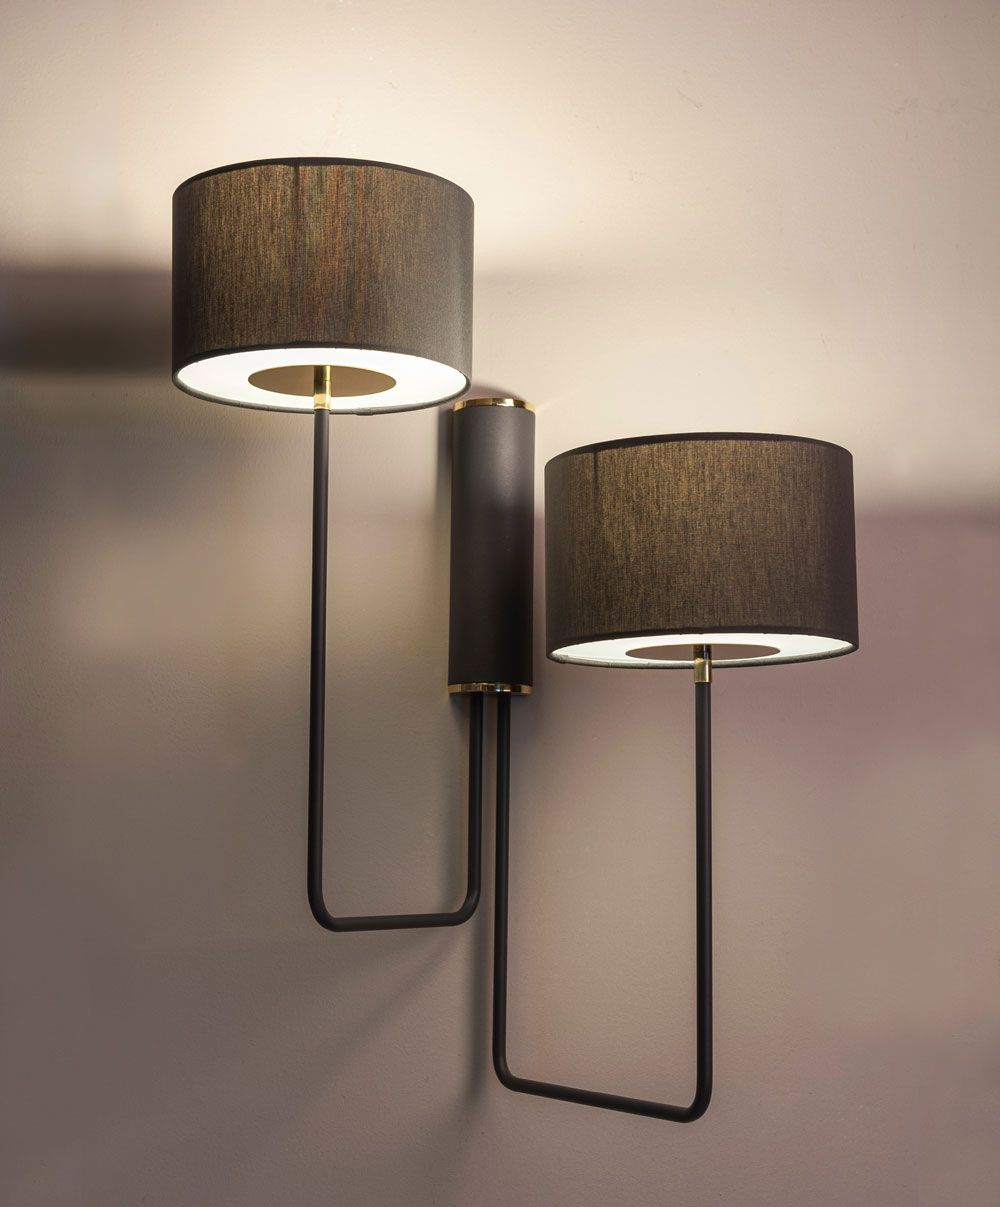 Martin Huxford Studio T59 | Wall lights, Contemporary